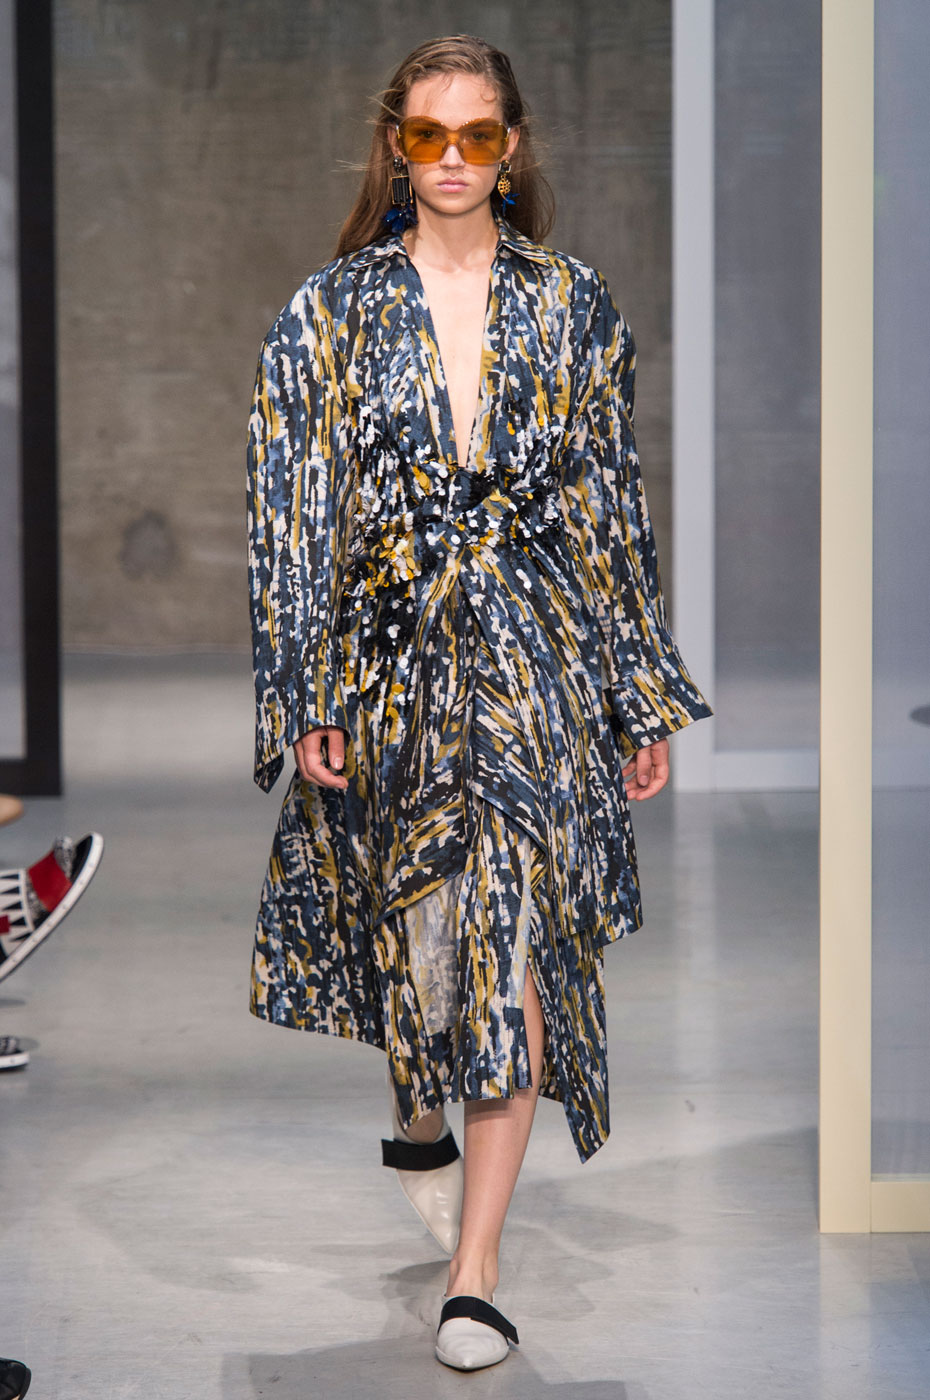 Marni Spring/Summer 2017 Makes a Strong Case for Slow Fashion